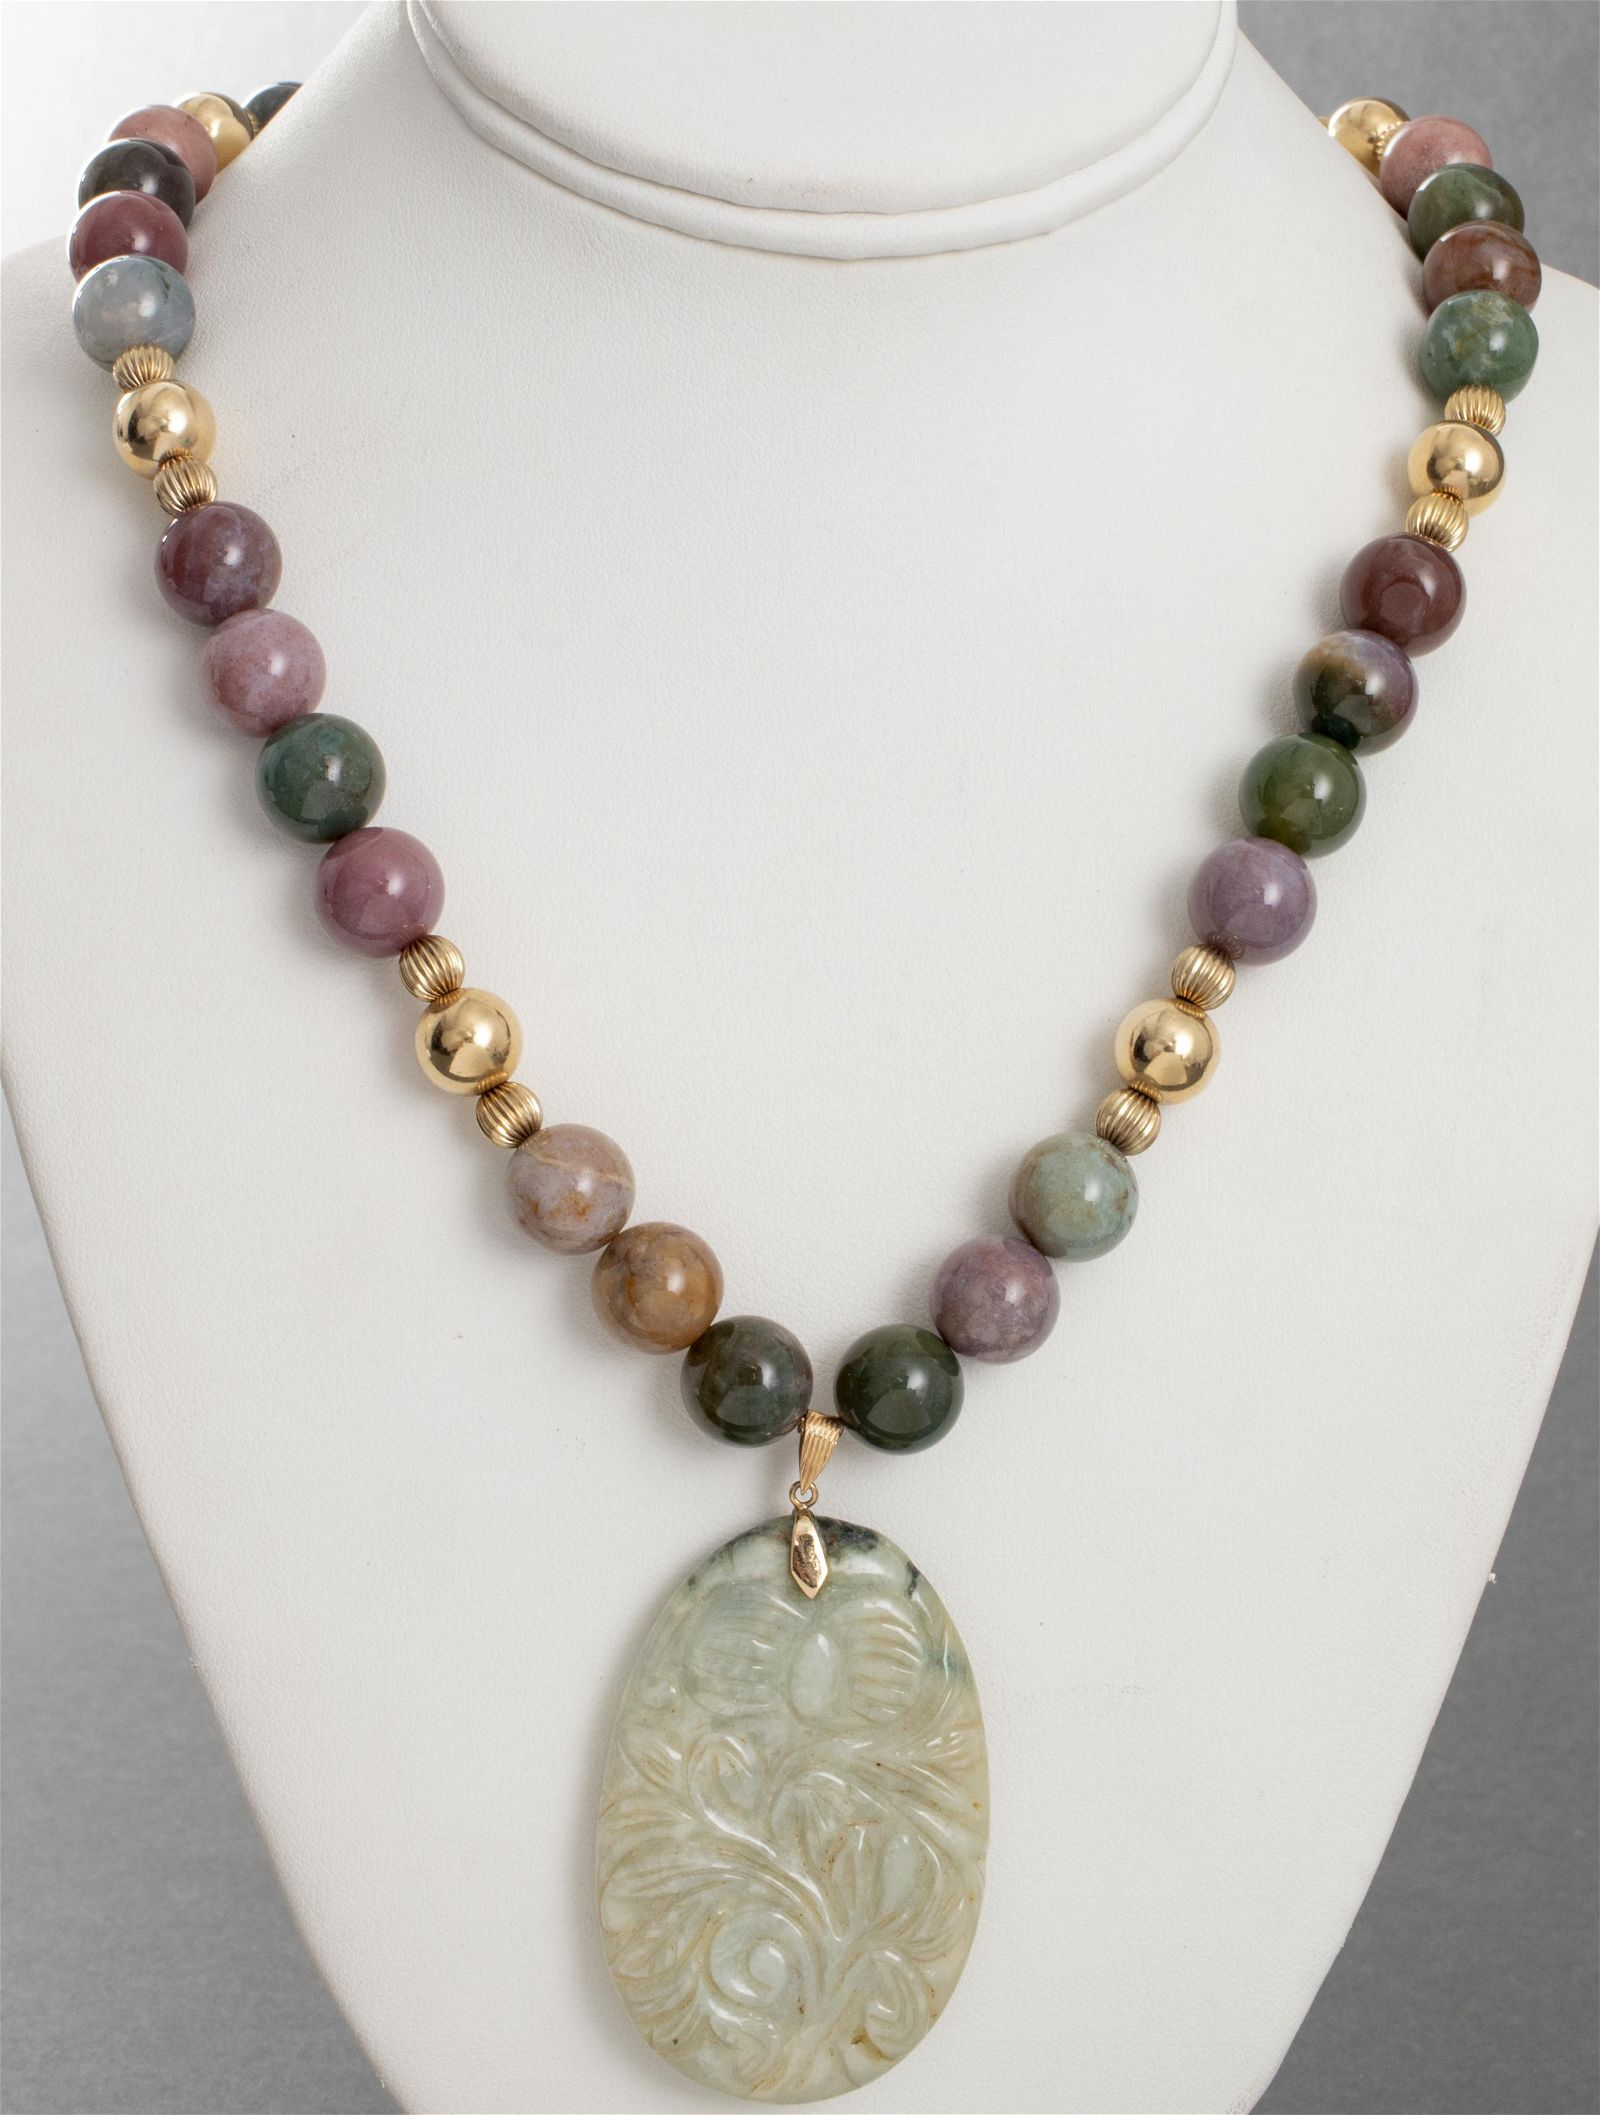 Carved Jade Colored Stone Pendant Necklace